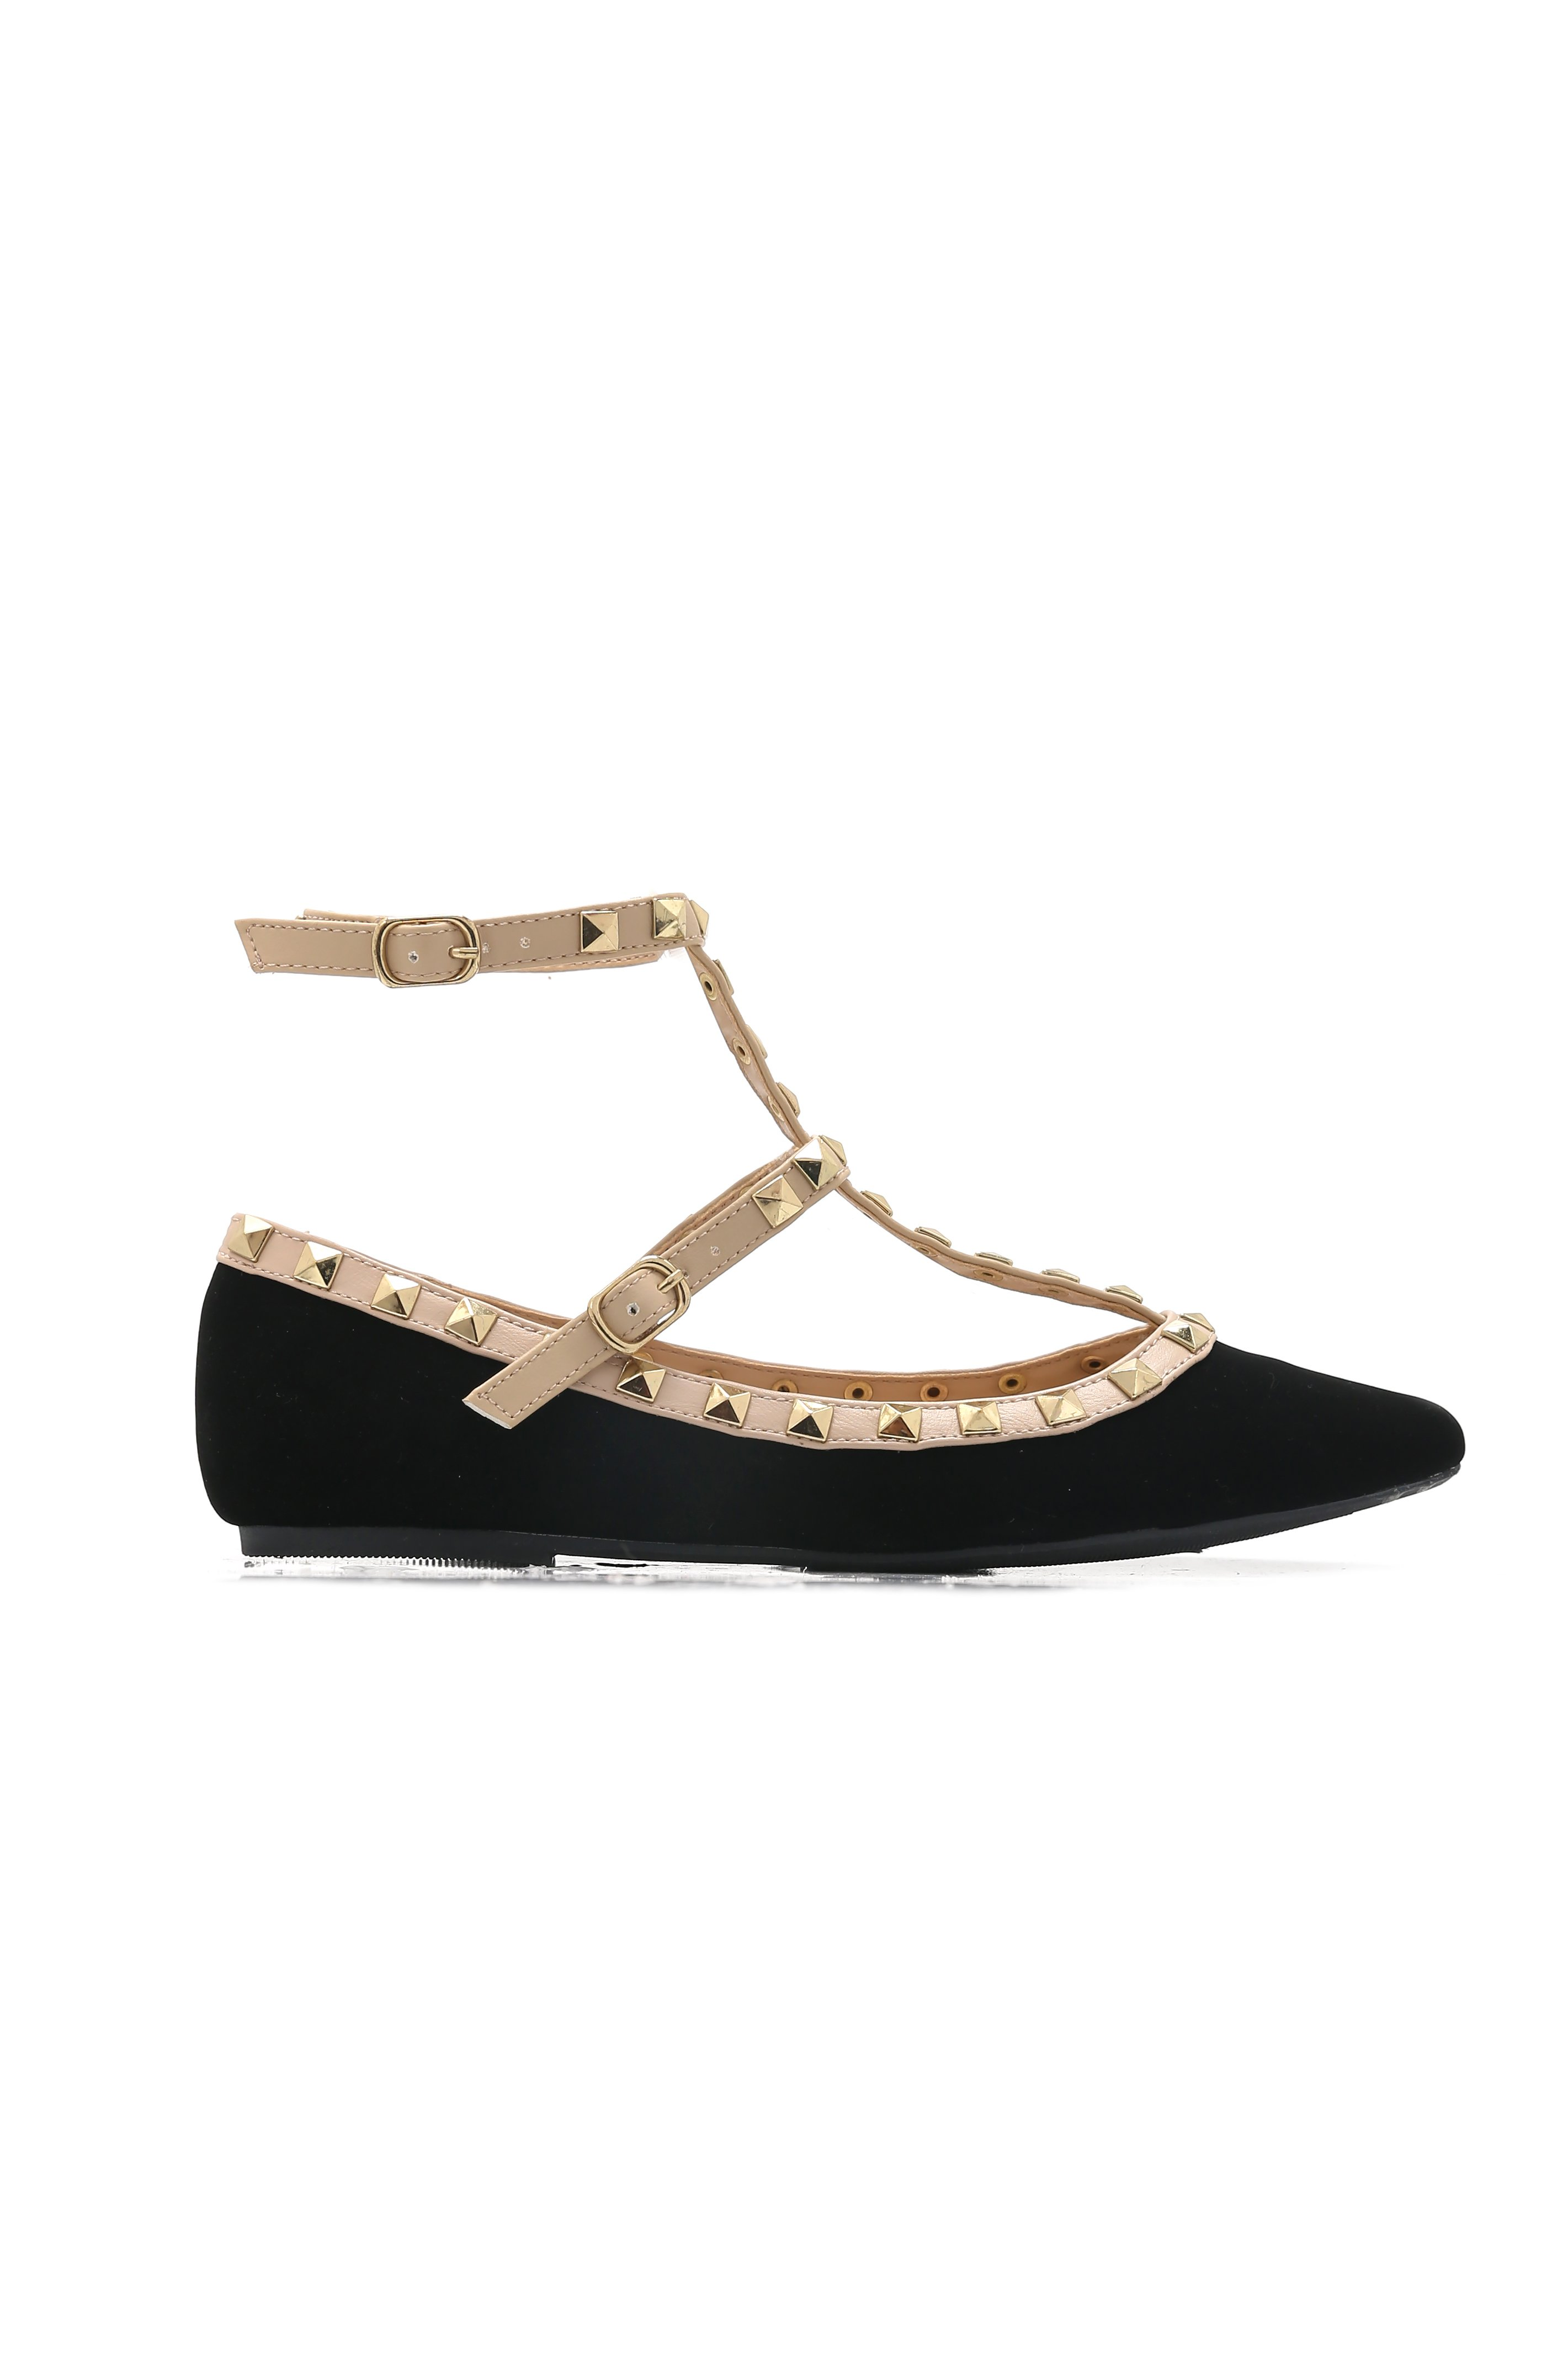 Catch Up To Love Studded Flat - Black